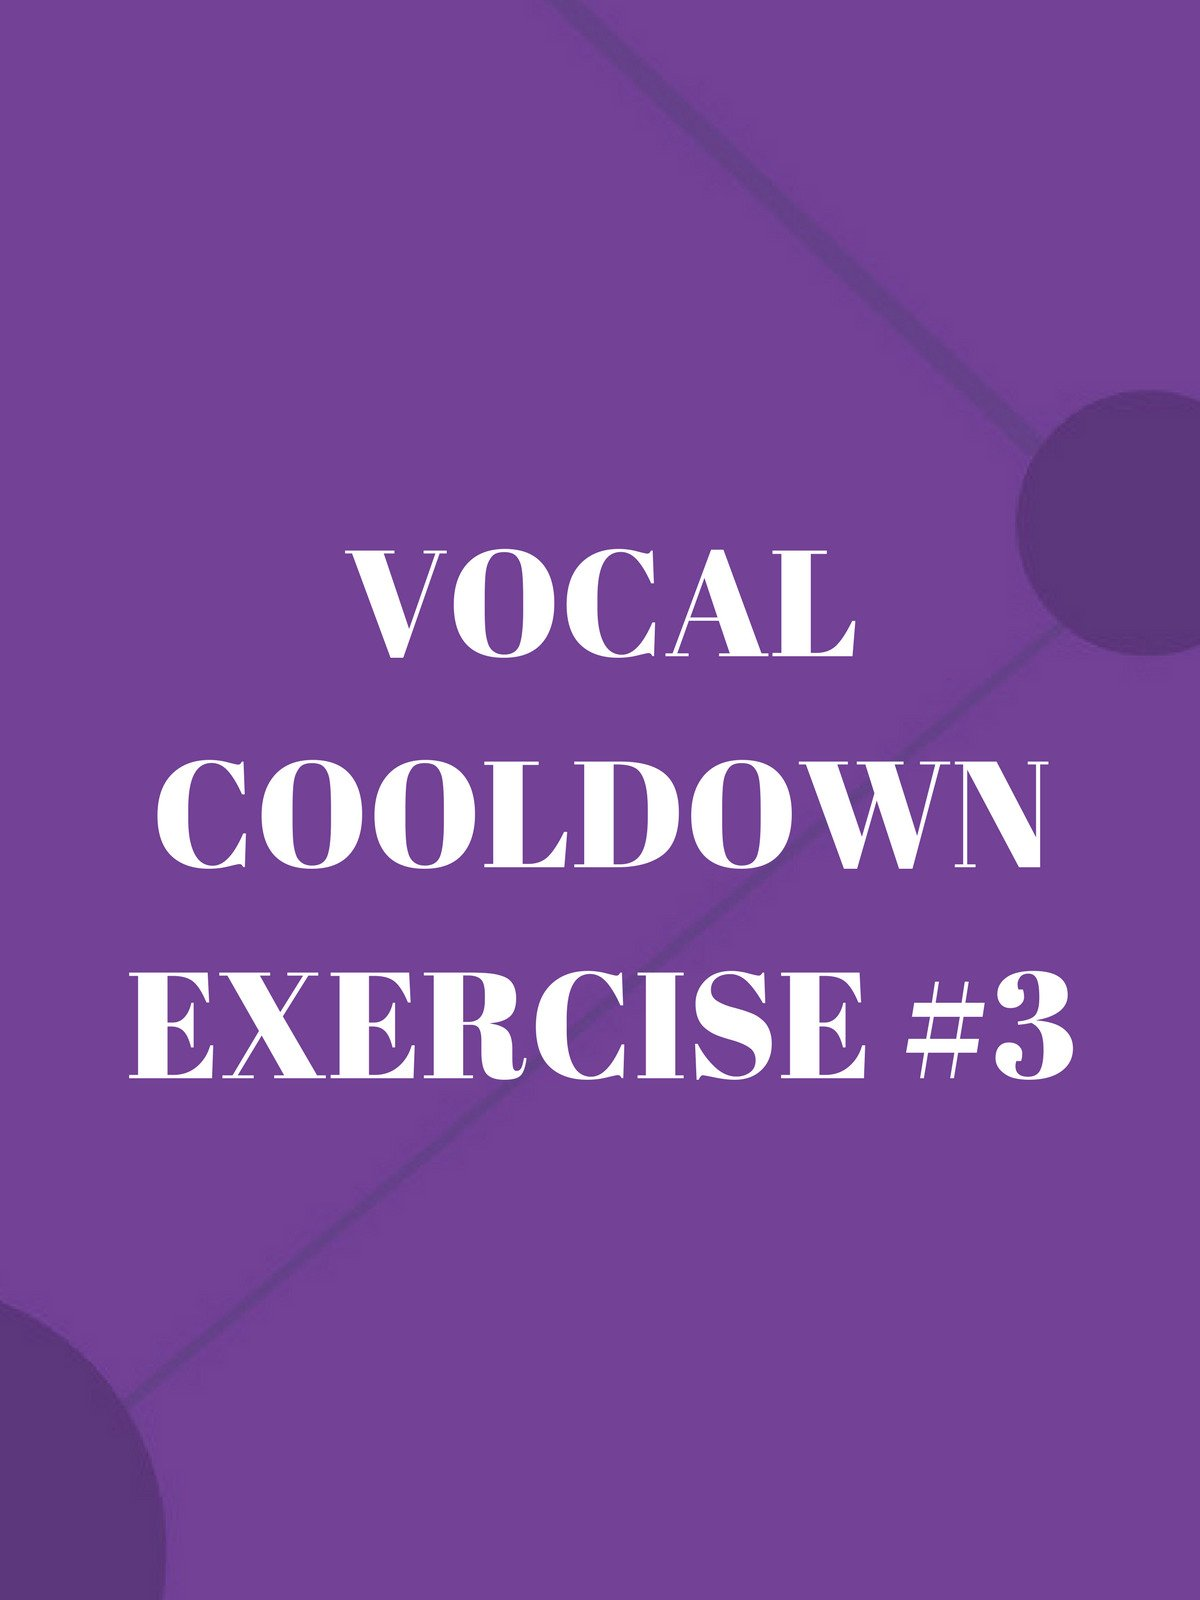 Vocal Cooldown Exercise #3